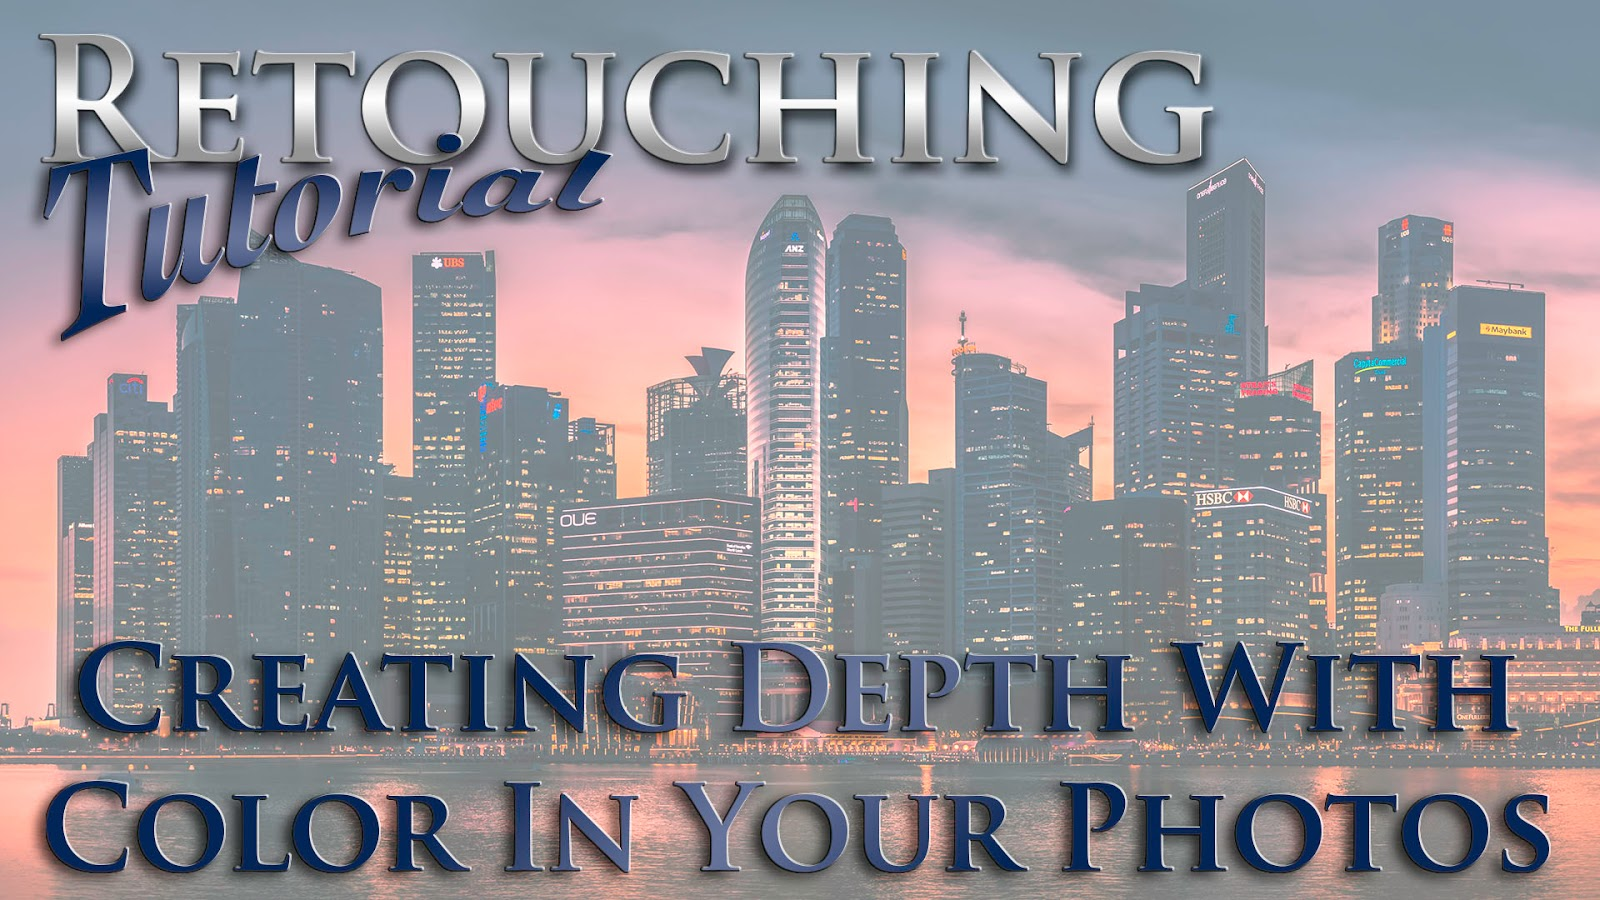 Lightroom 5 Retouching Workflow, Creating Depth With Color In Your Photos | Video Tutorial